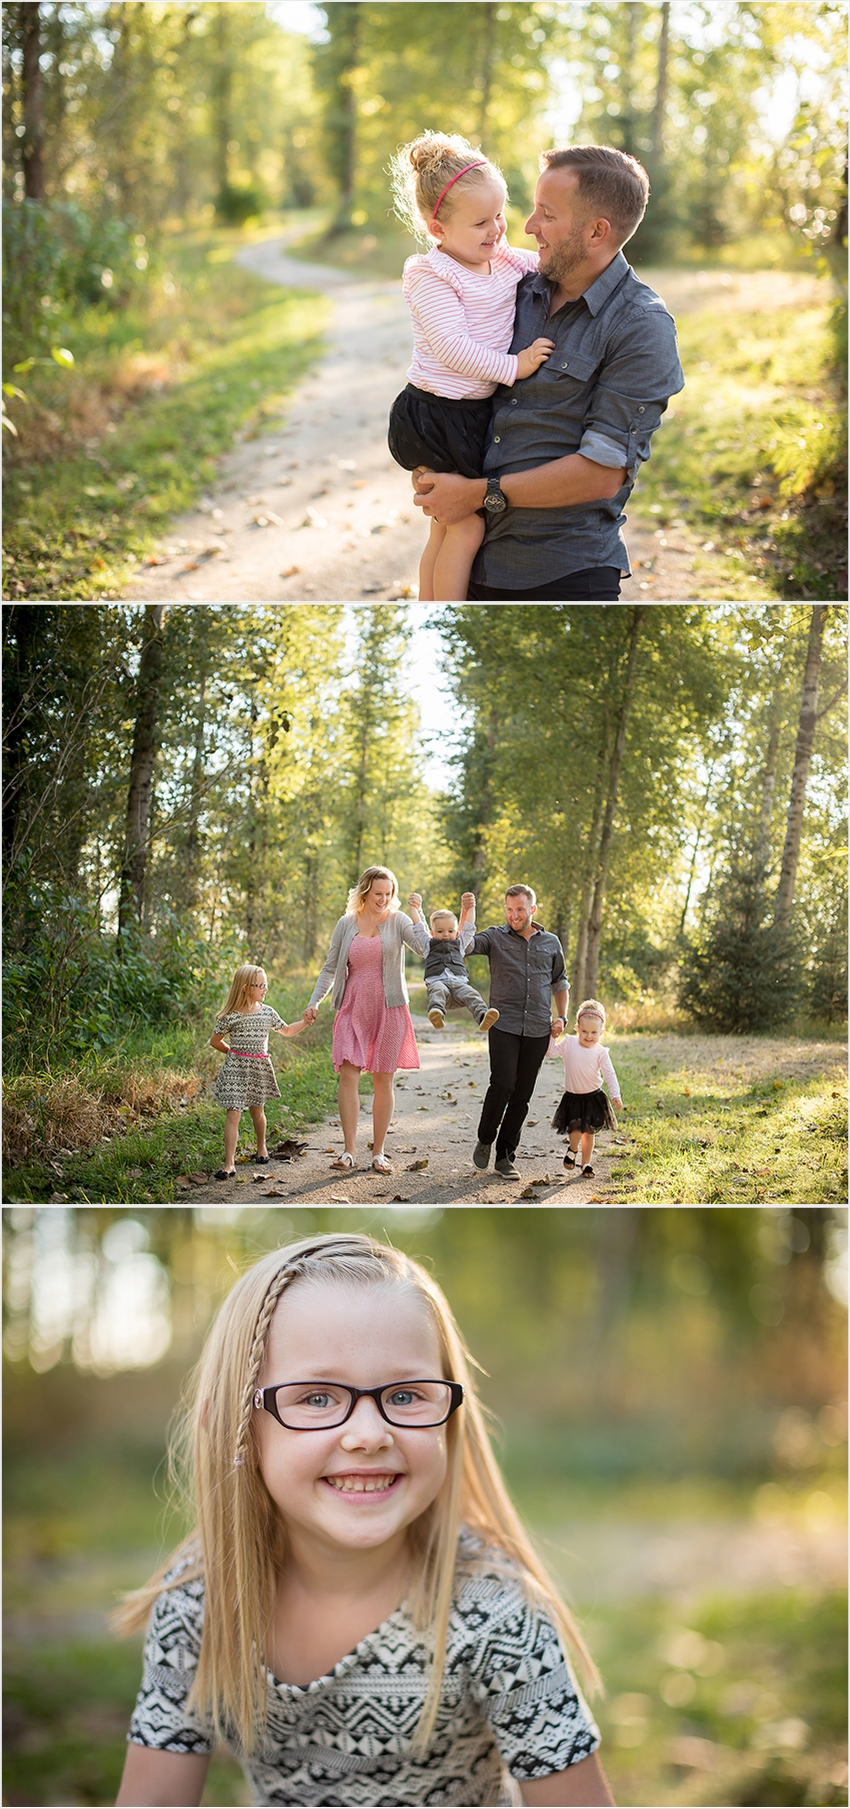 abbotsford-bc-family-photographer-photographer-006-side-6